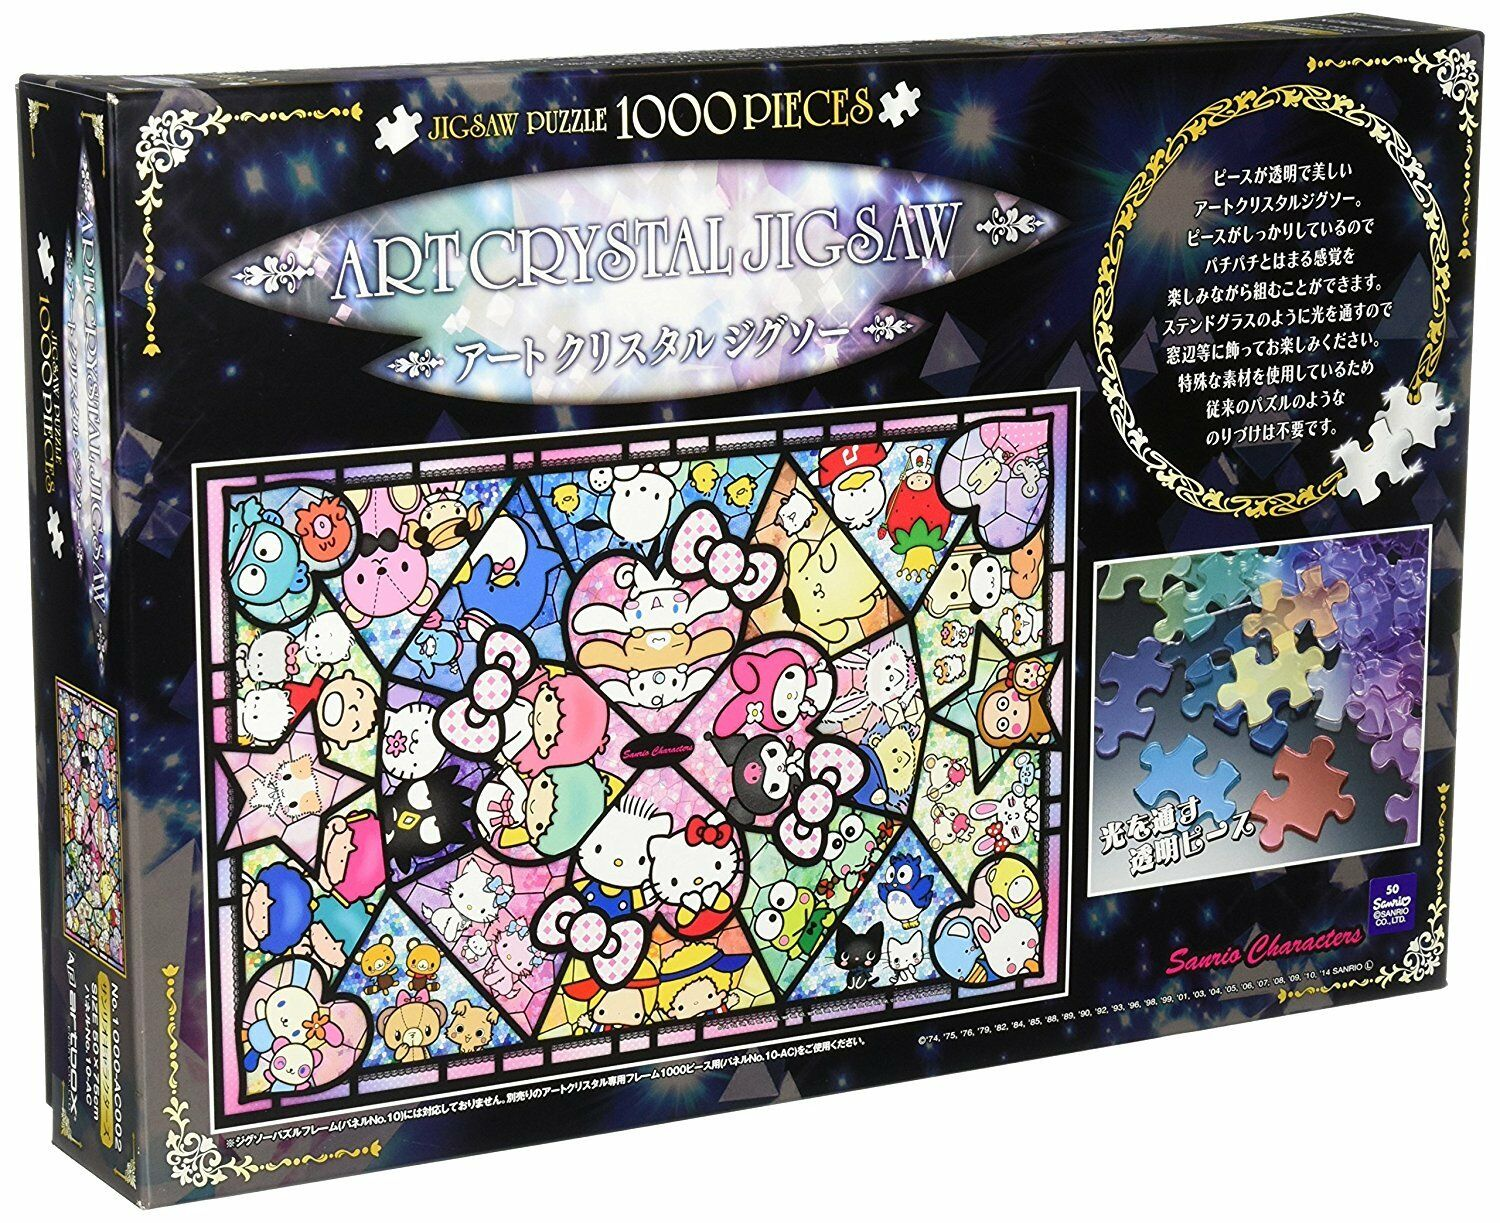 1000 Piece Jigsaw Puzzle sanrio characters art Crystal Jigsaw New from Japan